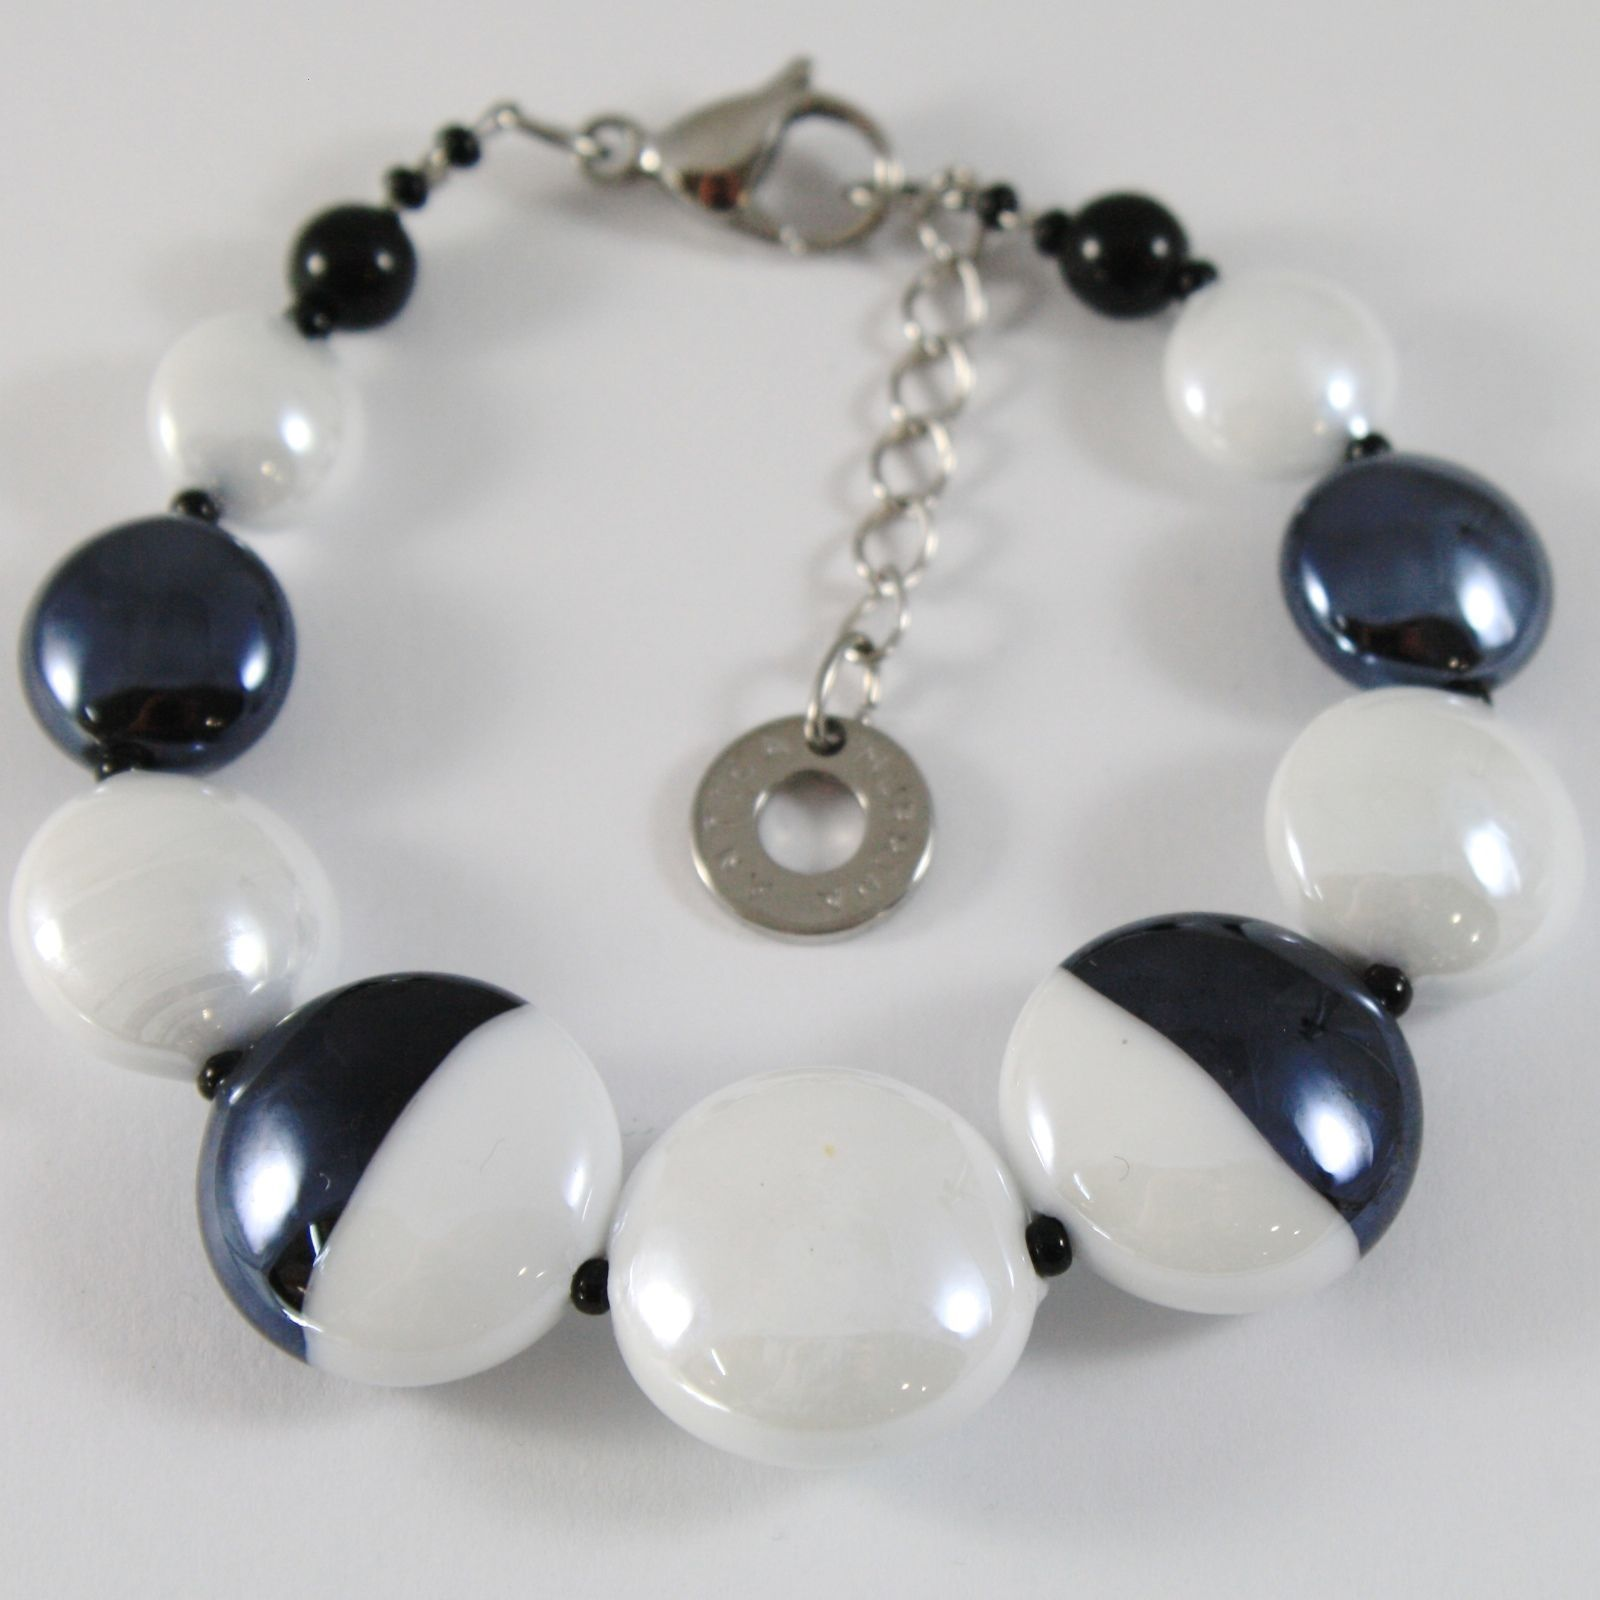 BRACELET ANTICA MURRINA VENEZIA WITH MURANO GLASS BLACK AND WHITE BR759A15